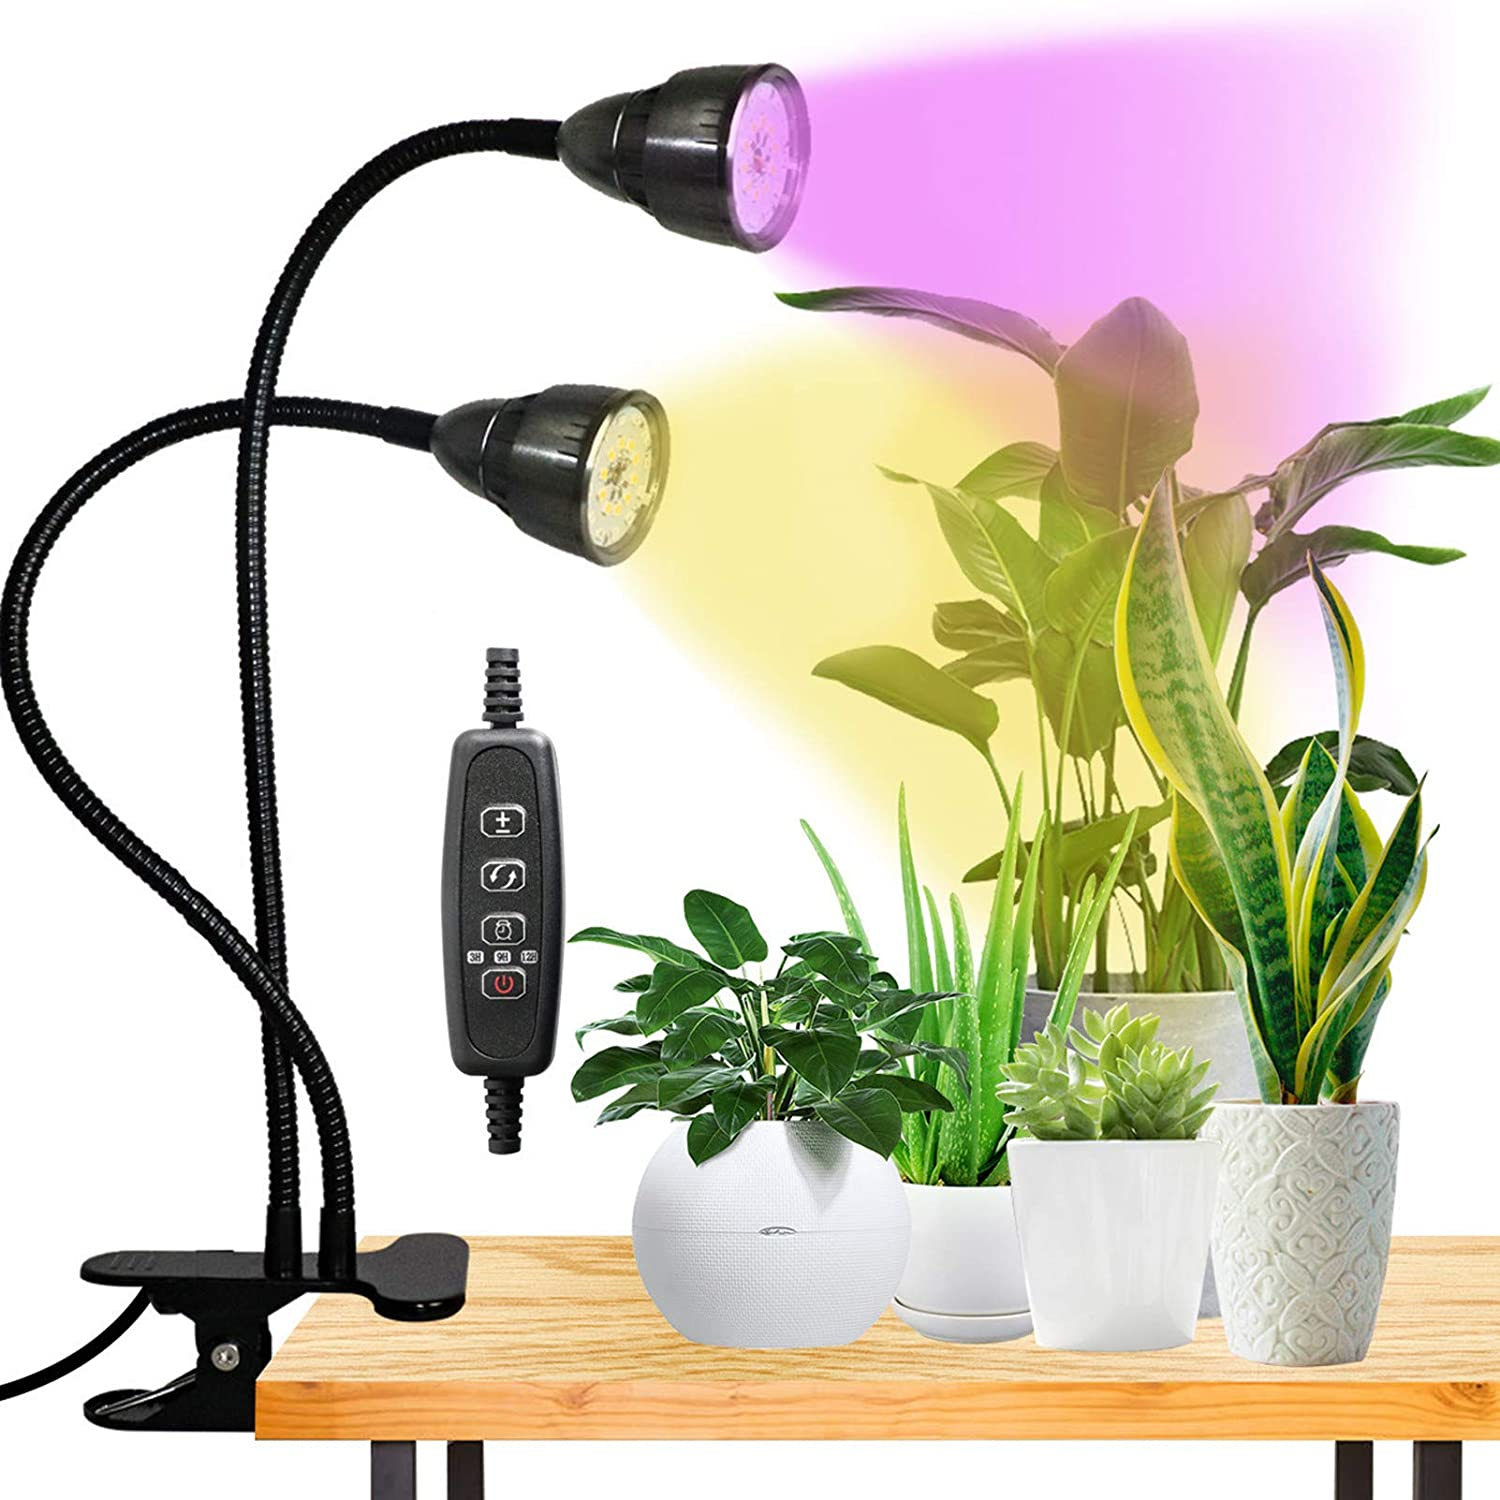 LED Grow Light for Indoor Plant,360° Gooseneck Dual Head Clip-on Plant Lights for Seedlings Succulents Micro-Greens,Timer Function (3 Modes & 10-Level Brightness): Home Improvement